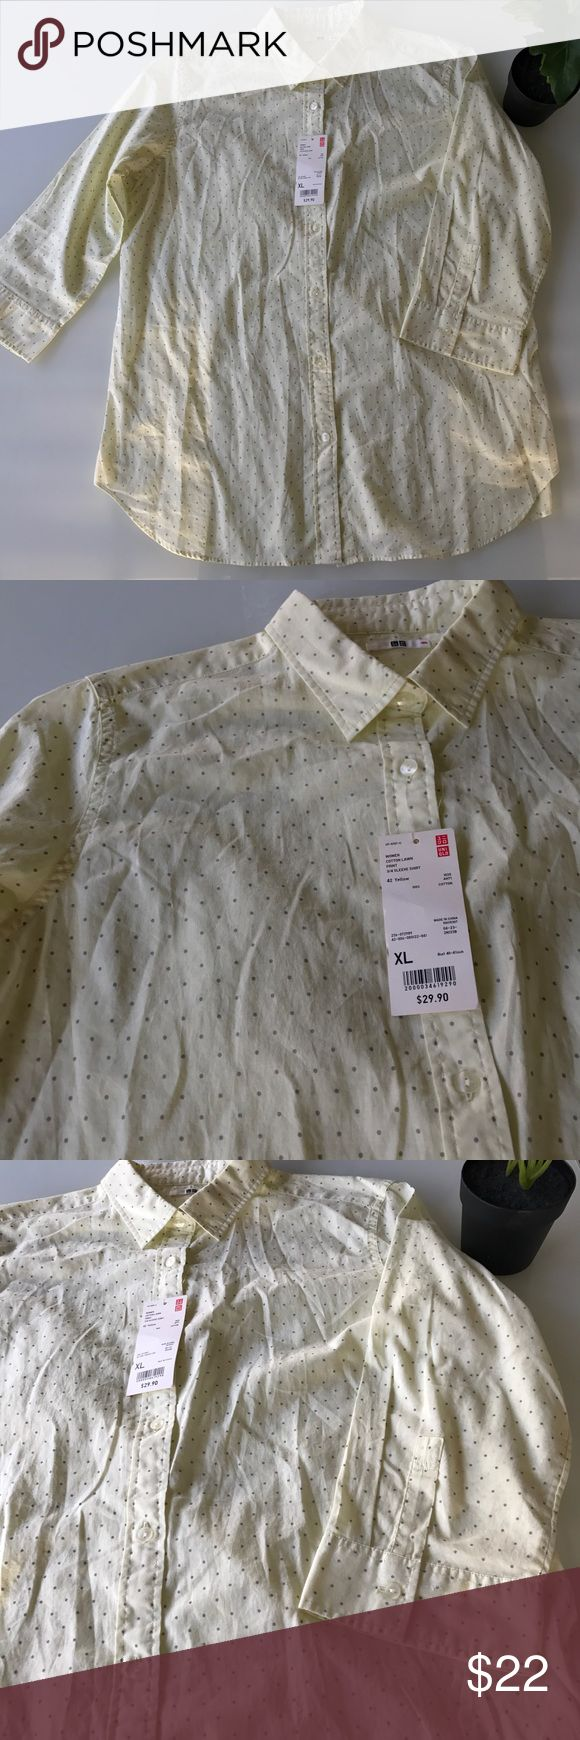 "UNIQLO button down 3/4 sleeve UNIQLO button down 3/4 sleeve shirt / women cotton lawn print / 100% cotton / bust 40 - 41"" Uniqlo Tops Button Down Shirts"